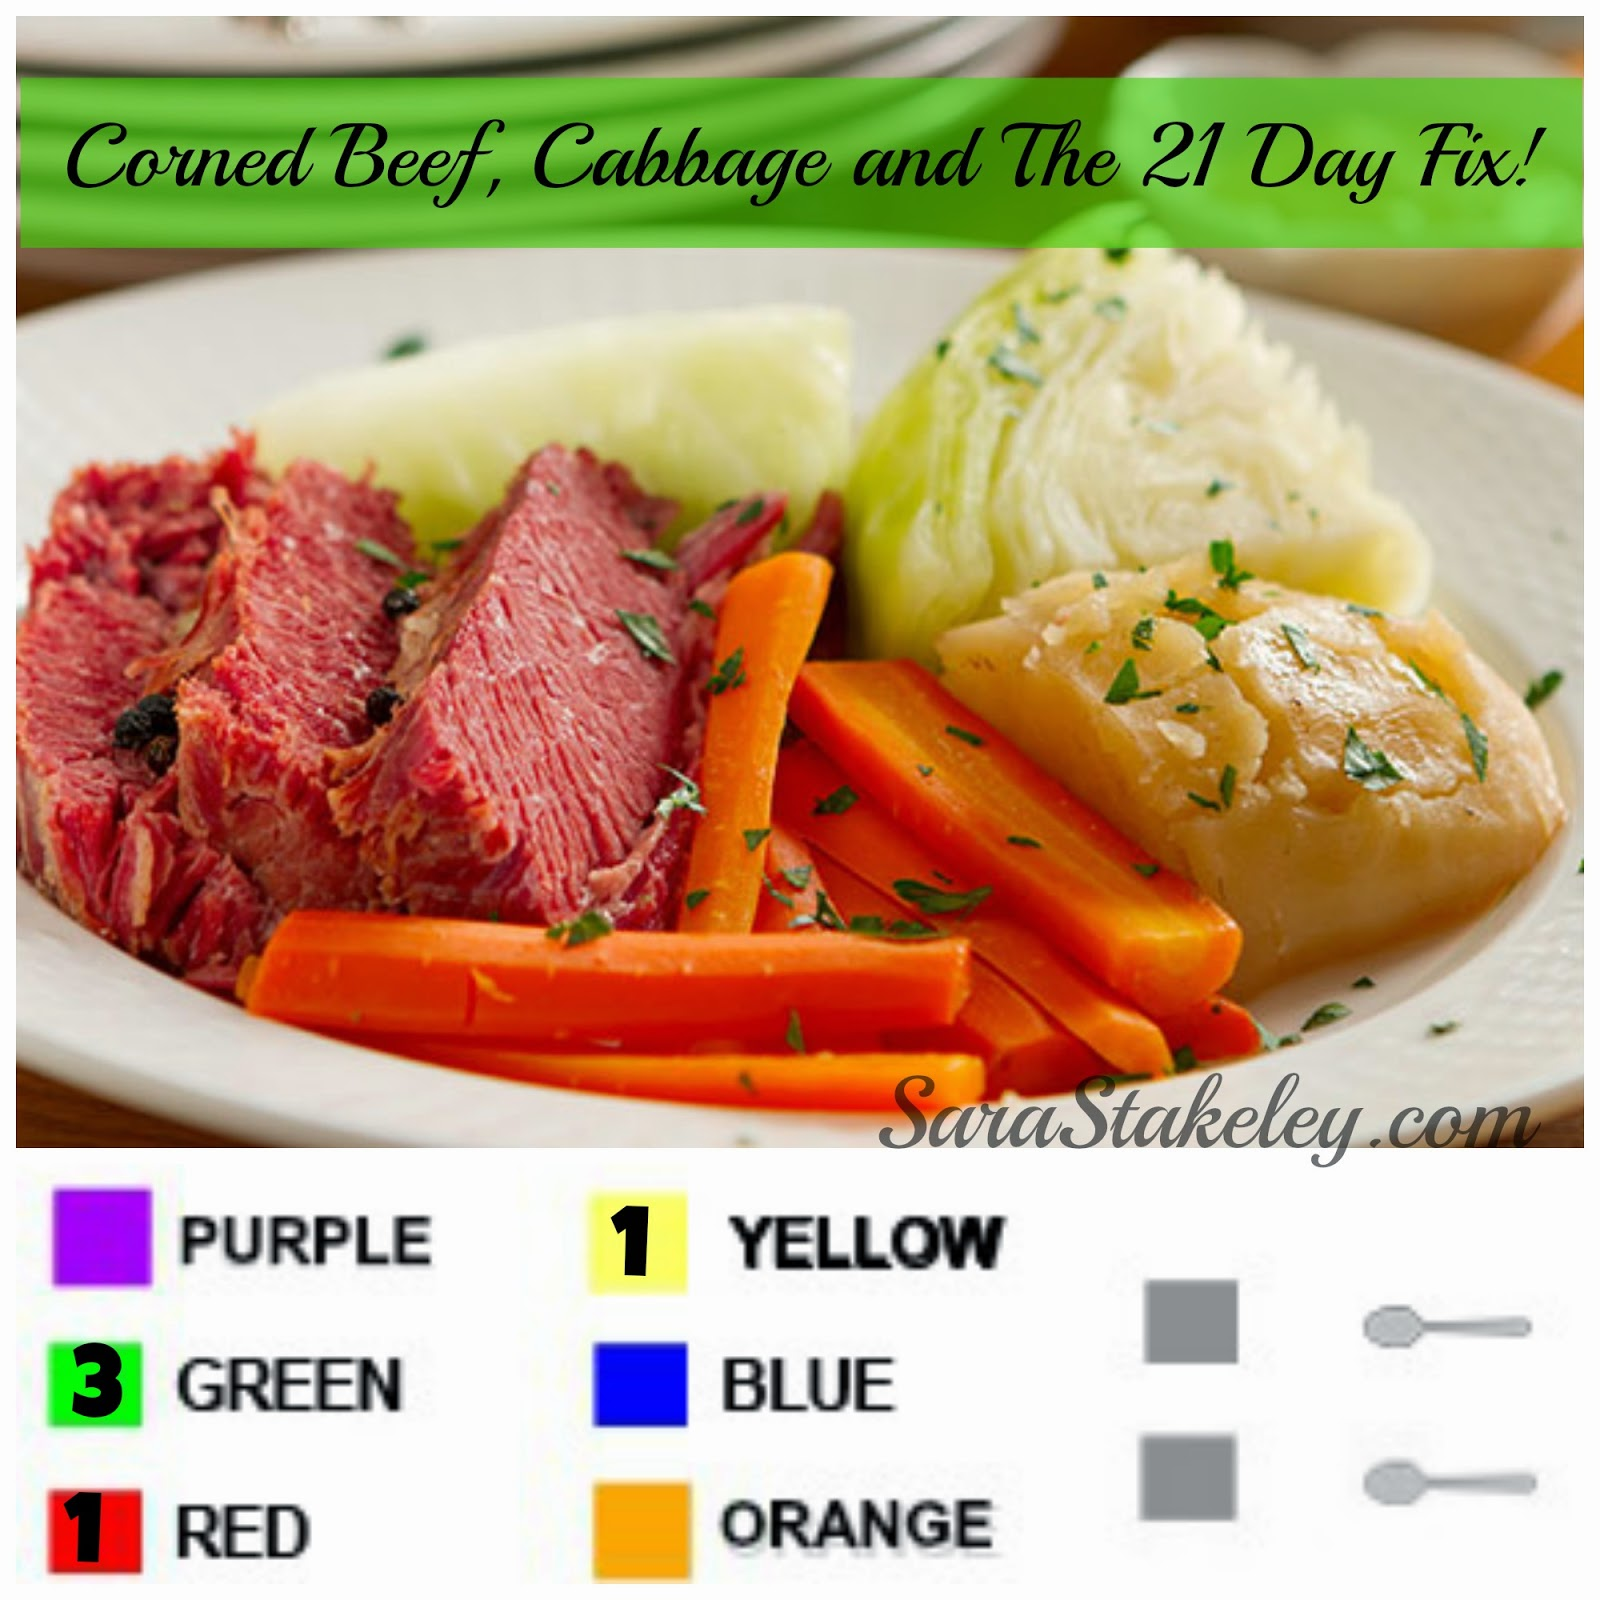 Corned Beef, Cabbage and The 21 Day Fix, Sarastakeley.com, Sara Stakeley, Irish dinner, 21 day day fix dinner, Eat clean St. Patrick's Day,